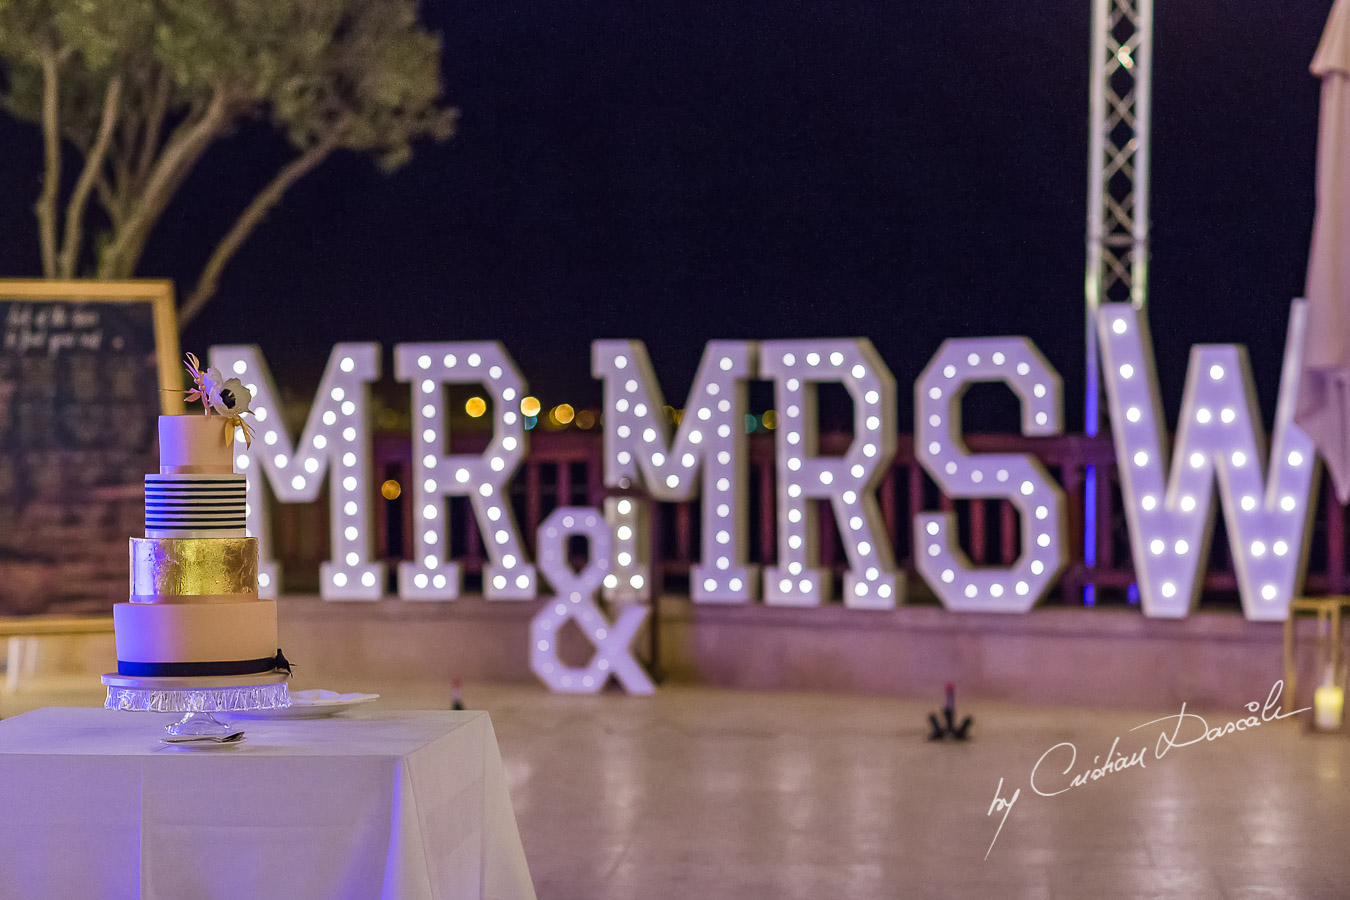 Simply beautiful wedding moments captured by Cristian Dascalu at an amazing Wedding at Elea Estate in Paphos, Cyprus.